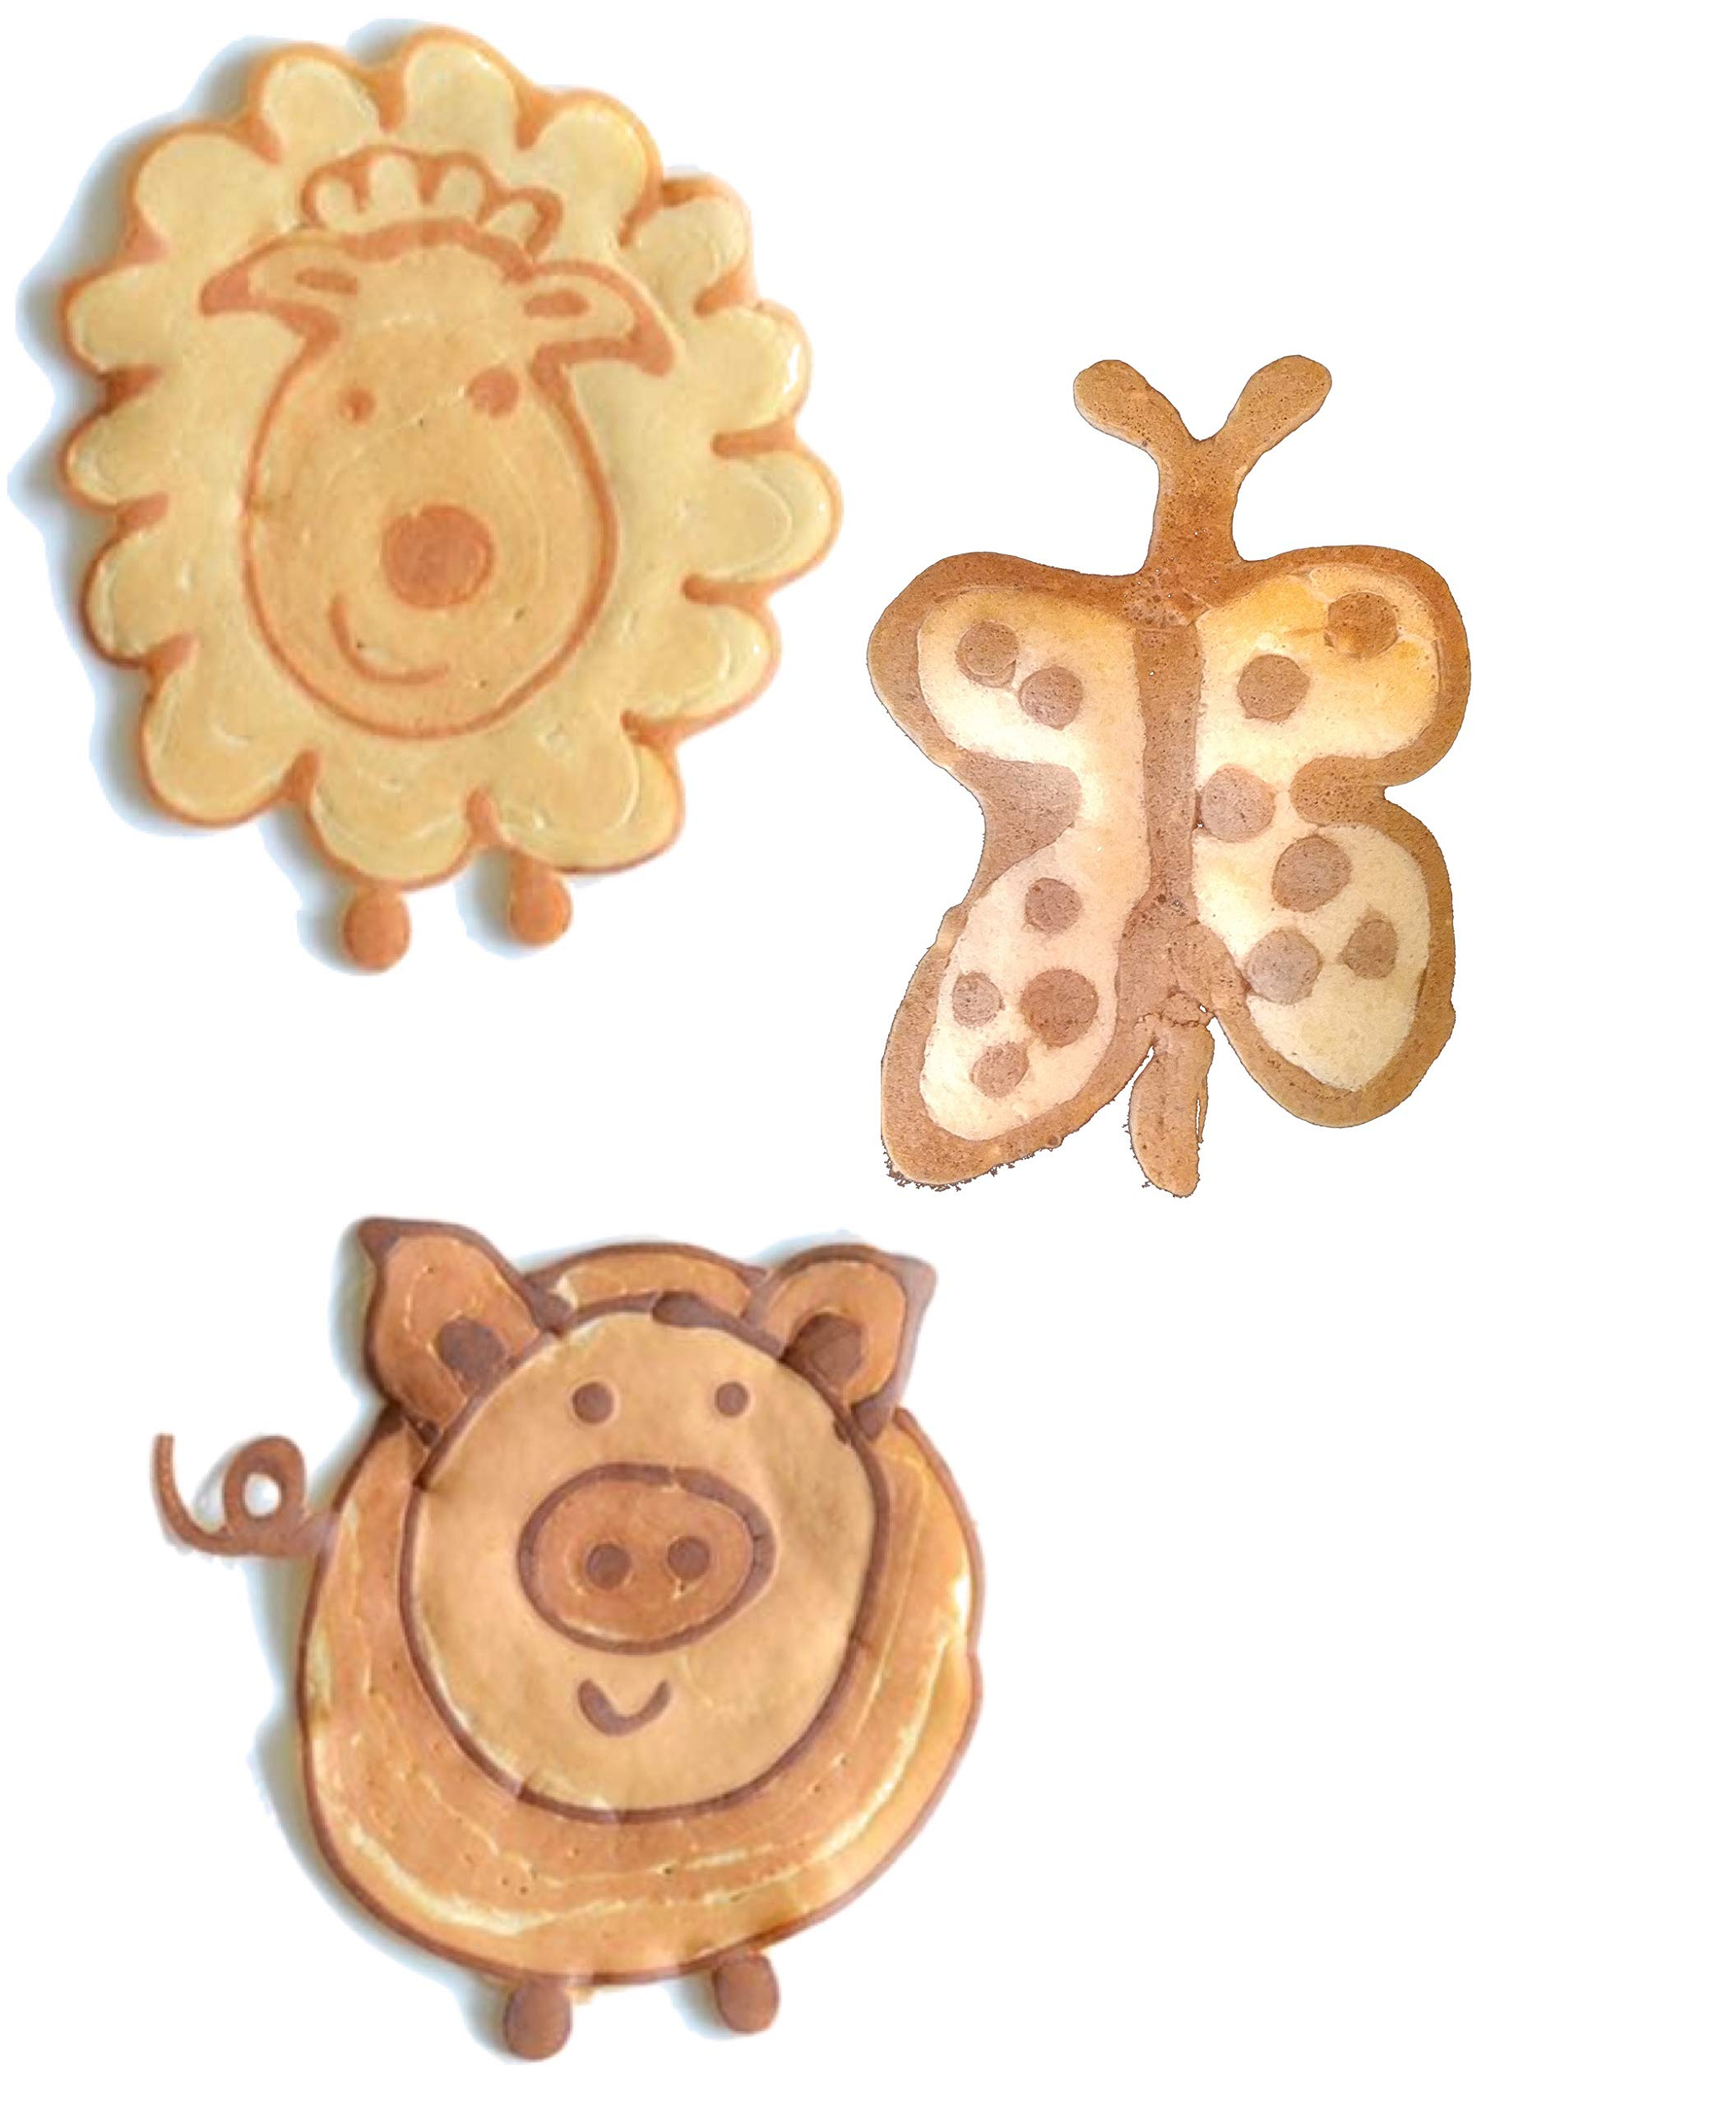 Pancake Party! The Ultimate Pancake Art Making Set for Kids - SUMMER SALE! / REG $35.95 Excellent culinary educational gift for children, young bakers, chefs! baking, cooking kit for boys and girls! by Made for Me (Image #7)